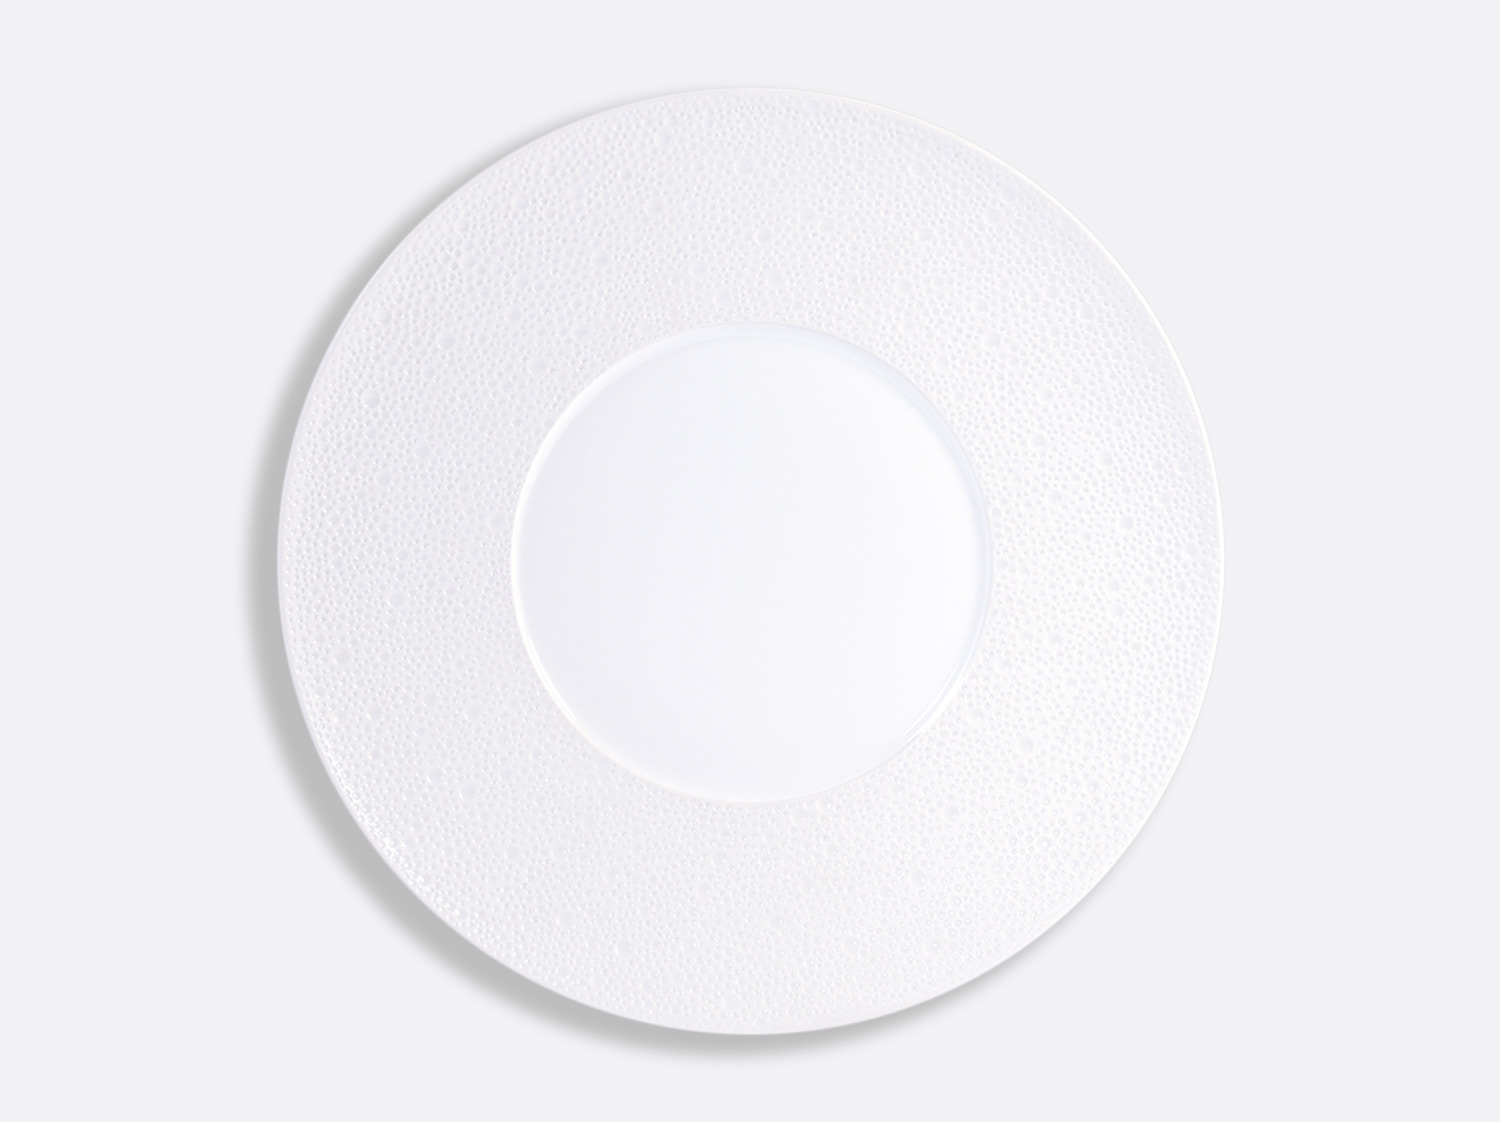 China Shogun plate 31.5 cm of the collection Ecume blanc aile mat | Bernardaud